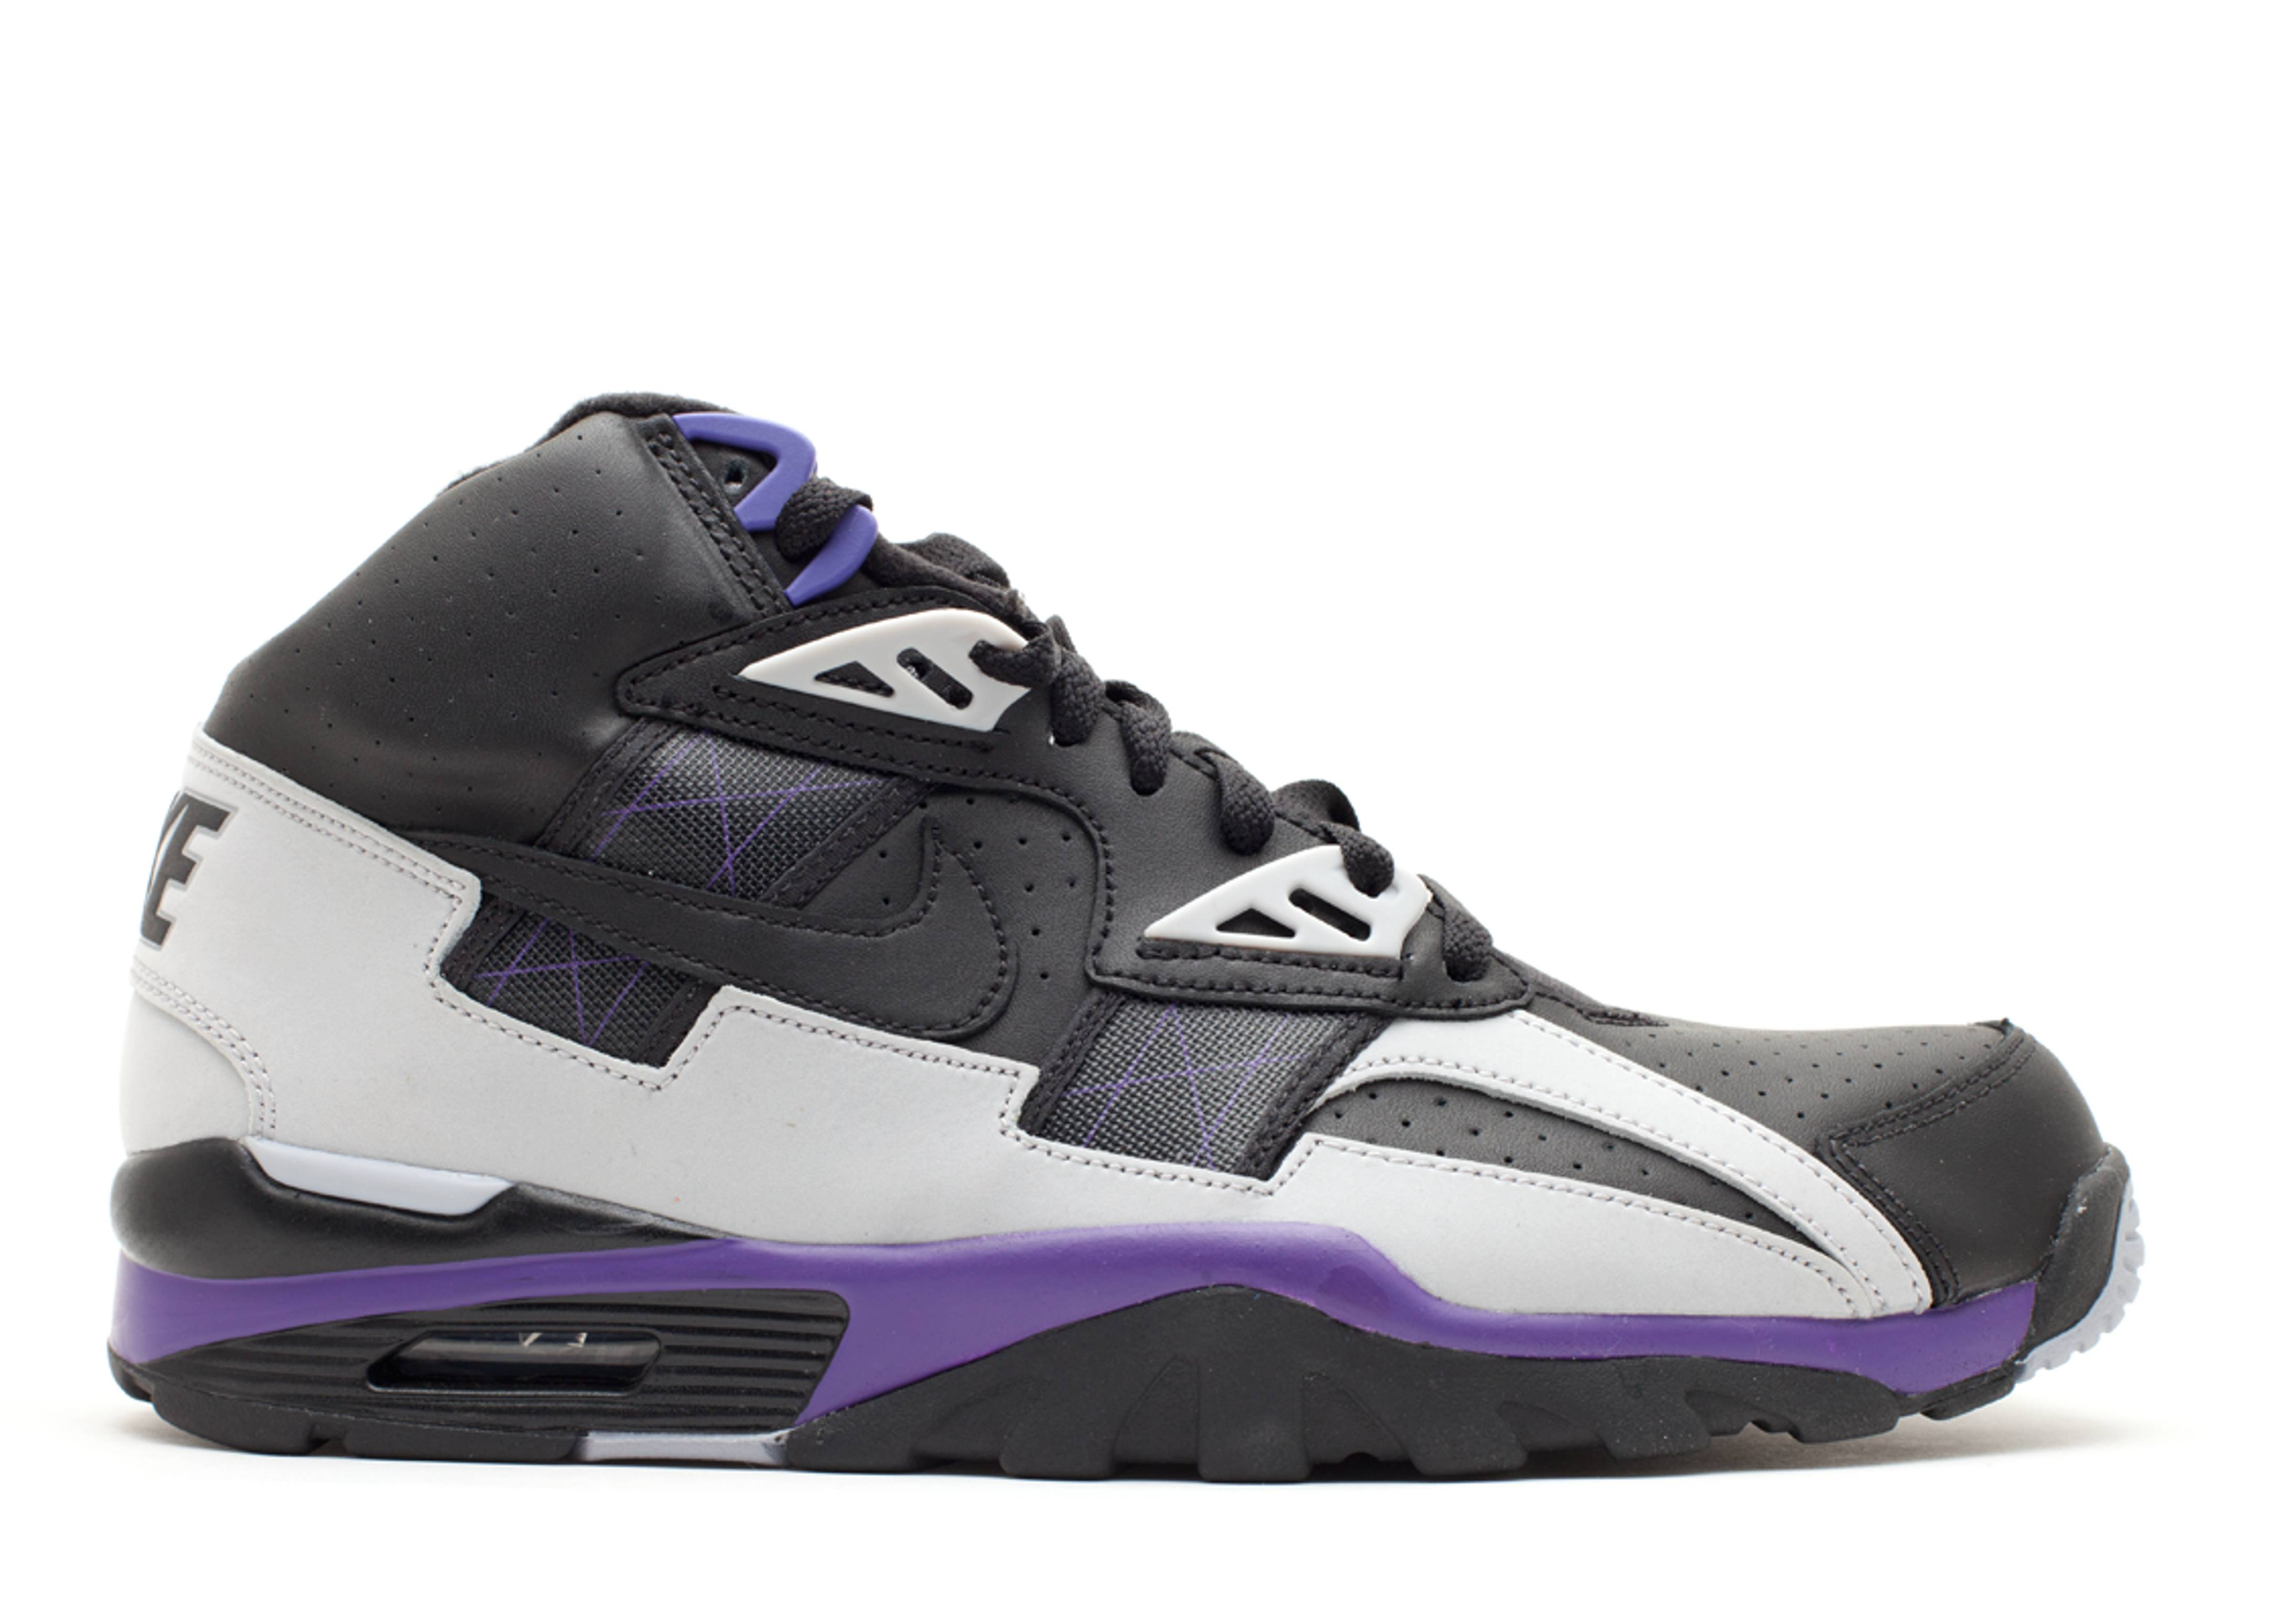 3ce17fe7aea Air Trainer Sc High - Nike - 302346 050 - black black-wolf grey-clb ...